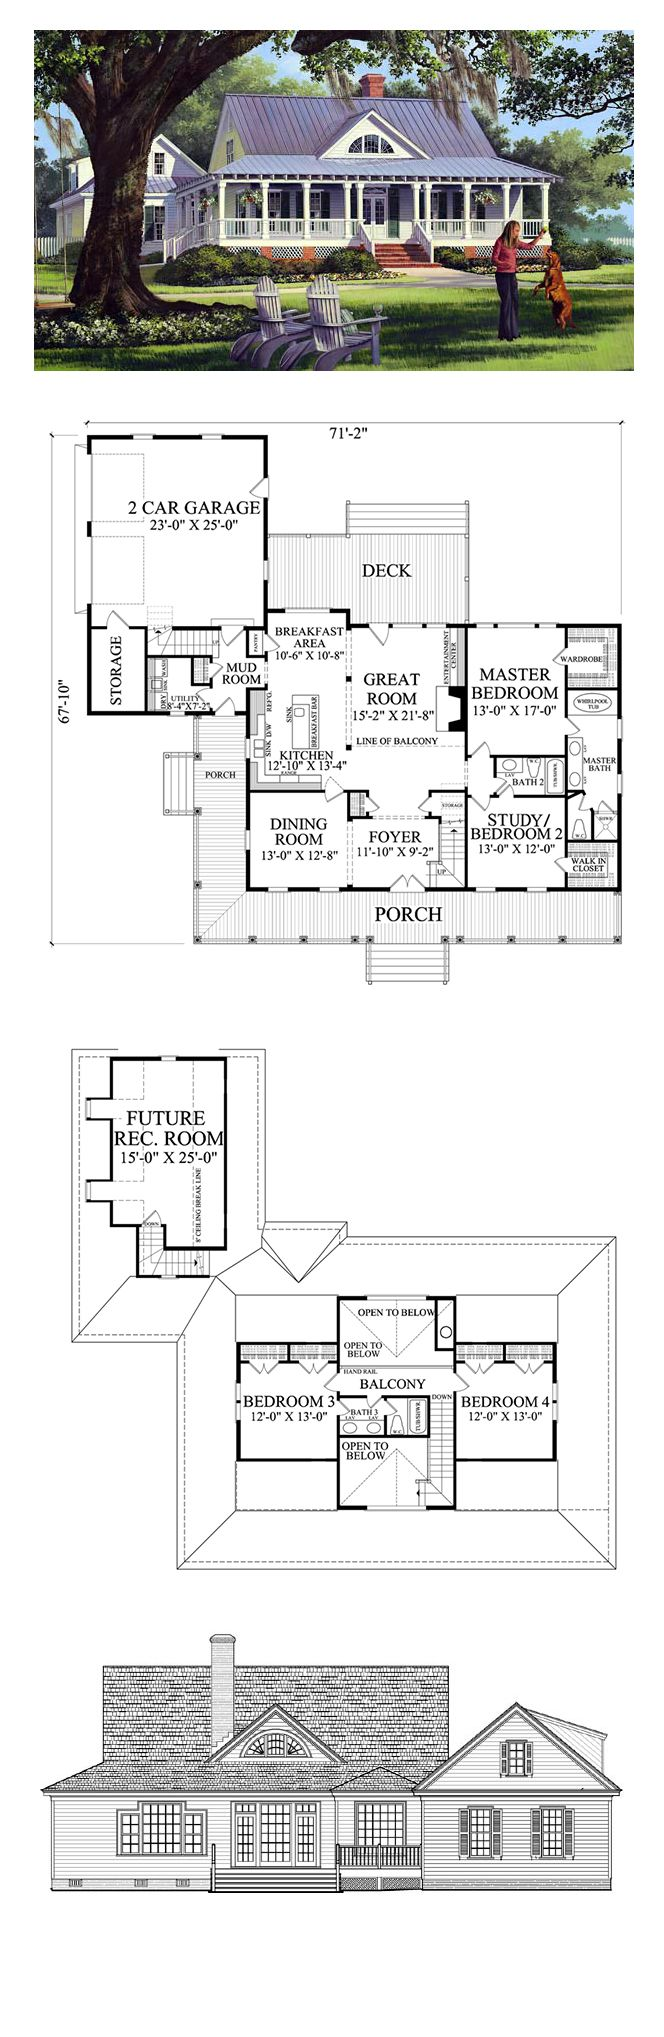 69 best floor plans images on pinterest home architecture and